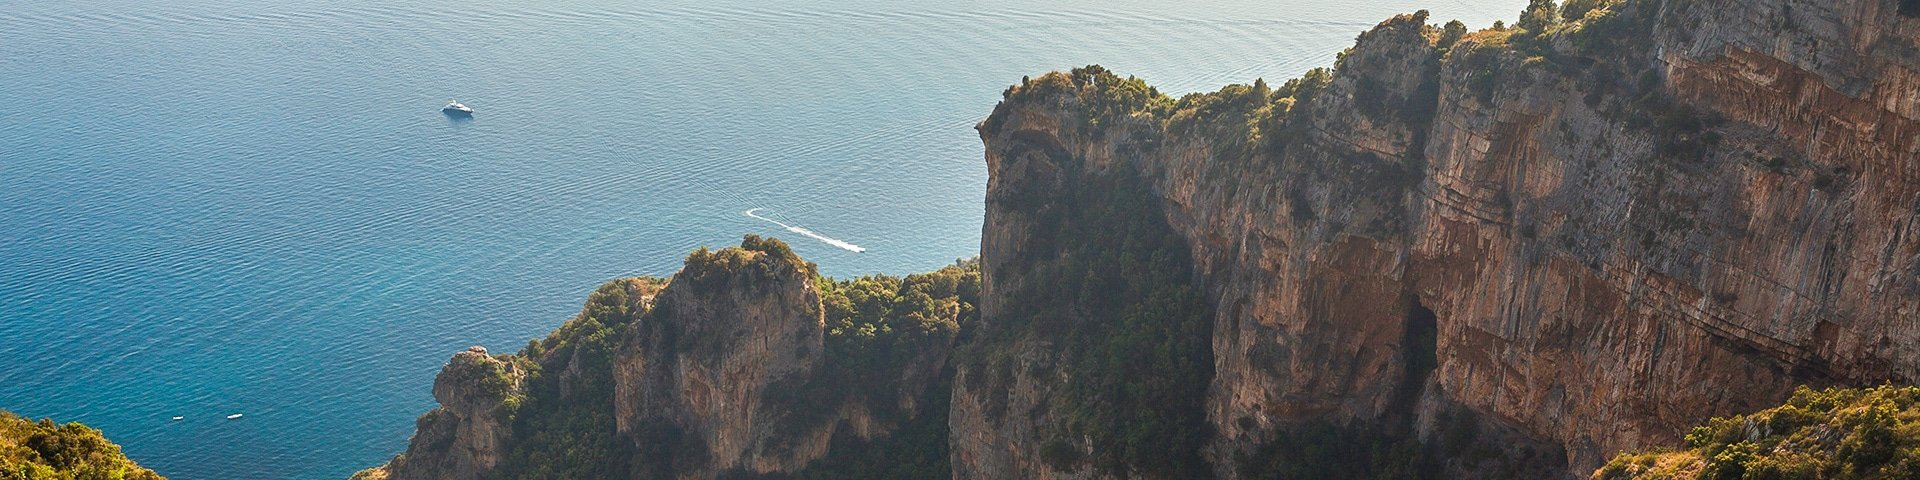 Panorama of the Path of the Gods hike in Amalfi Coast, Italy